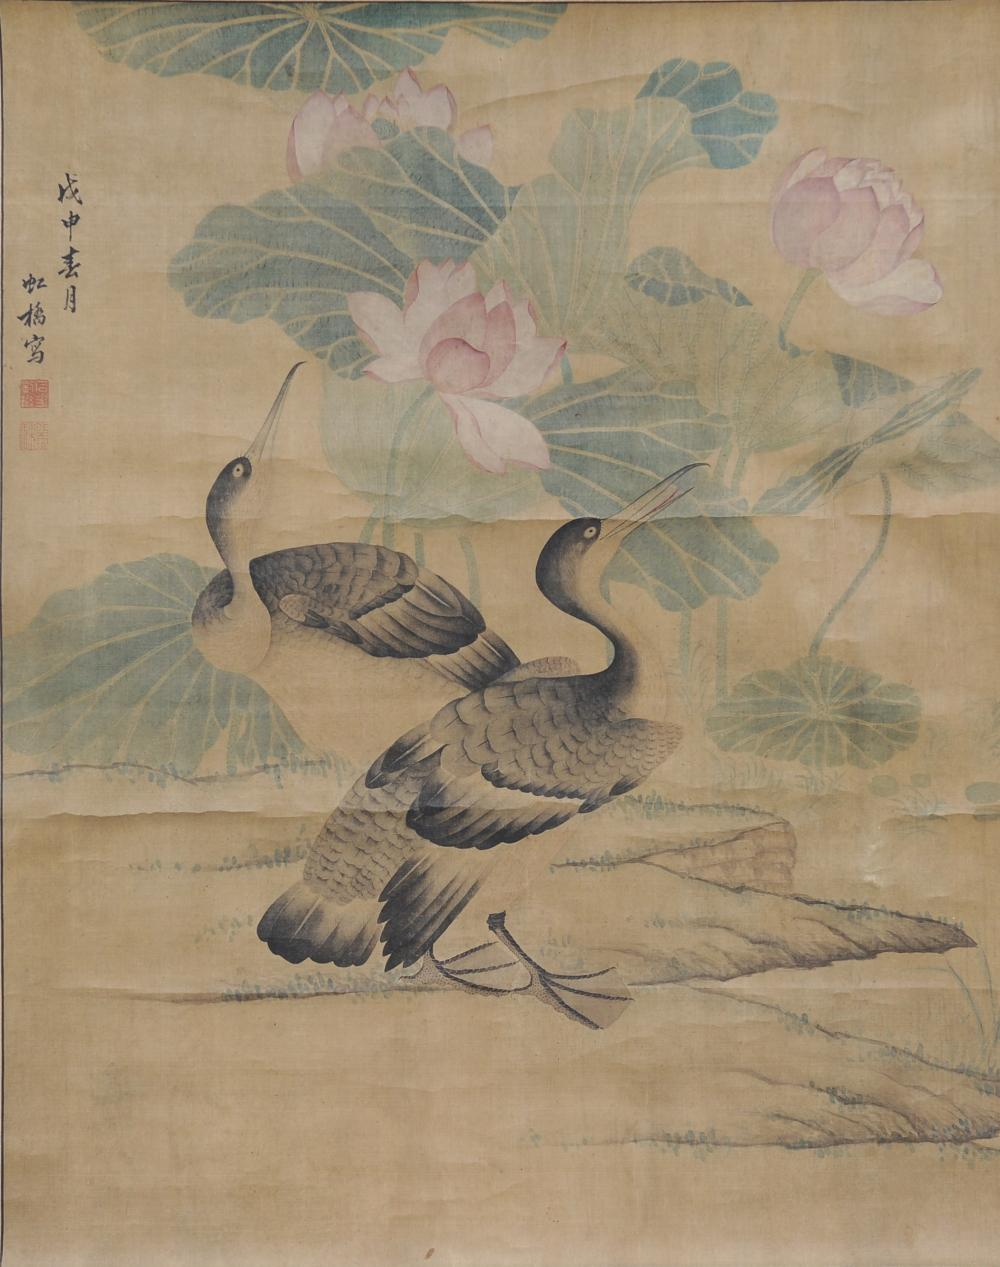 CHINESE PAINTING OF BIRDS W/ LOTUSES, HONG QIAO